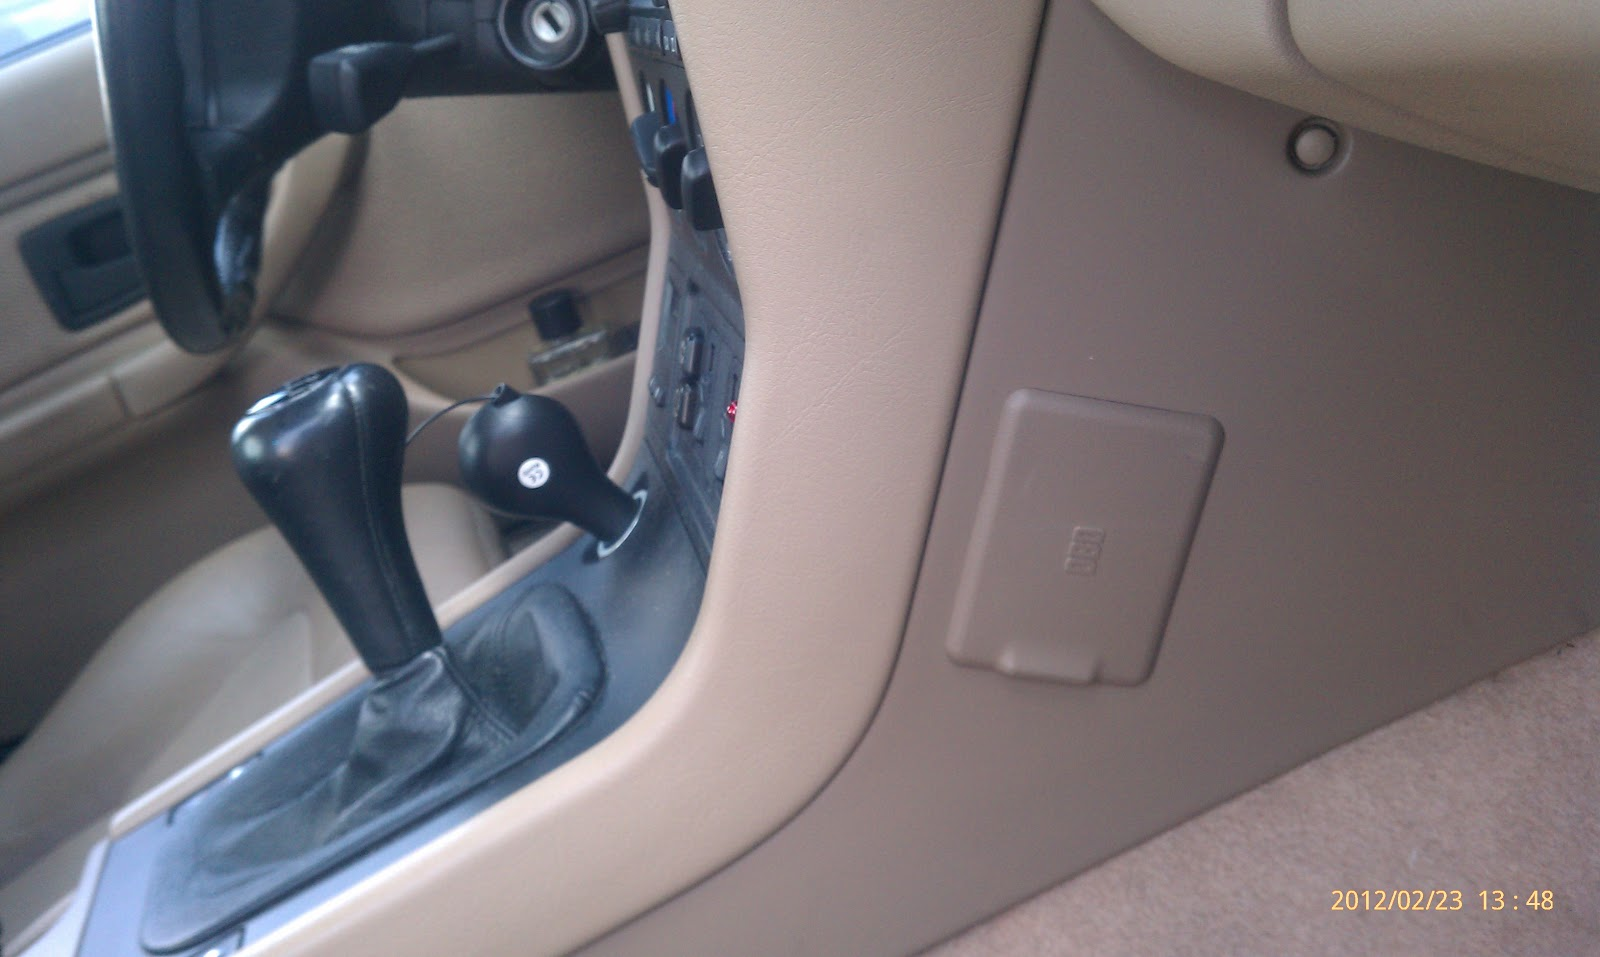 Location of the OBD Plug on a 1996 BMW Z3